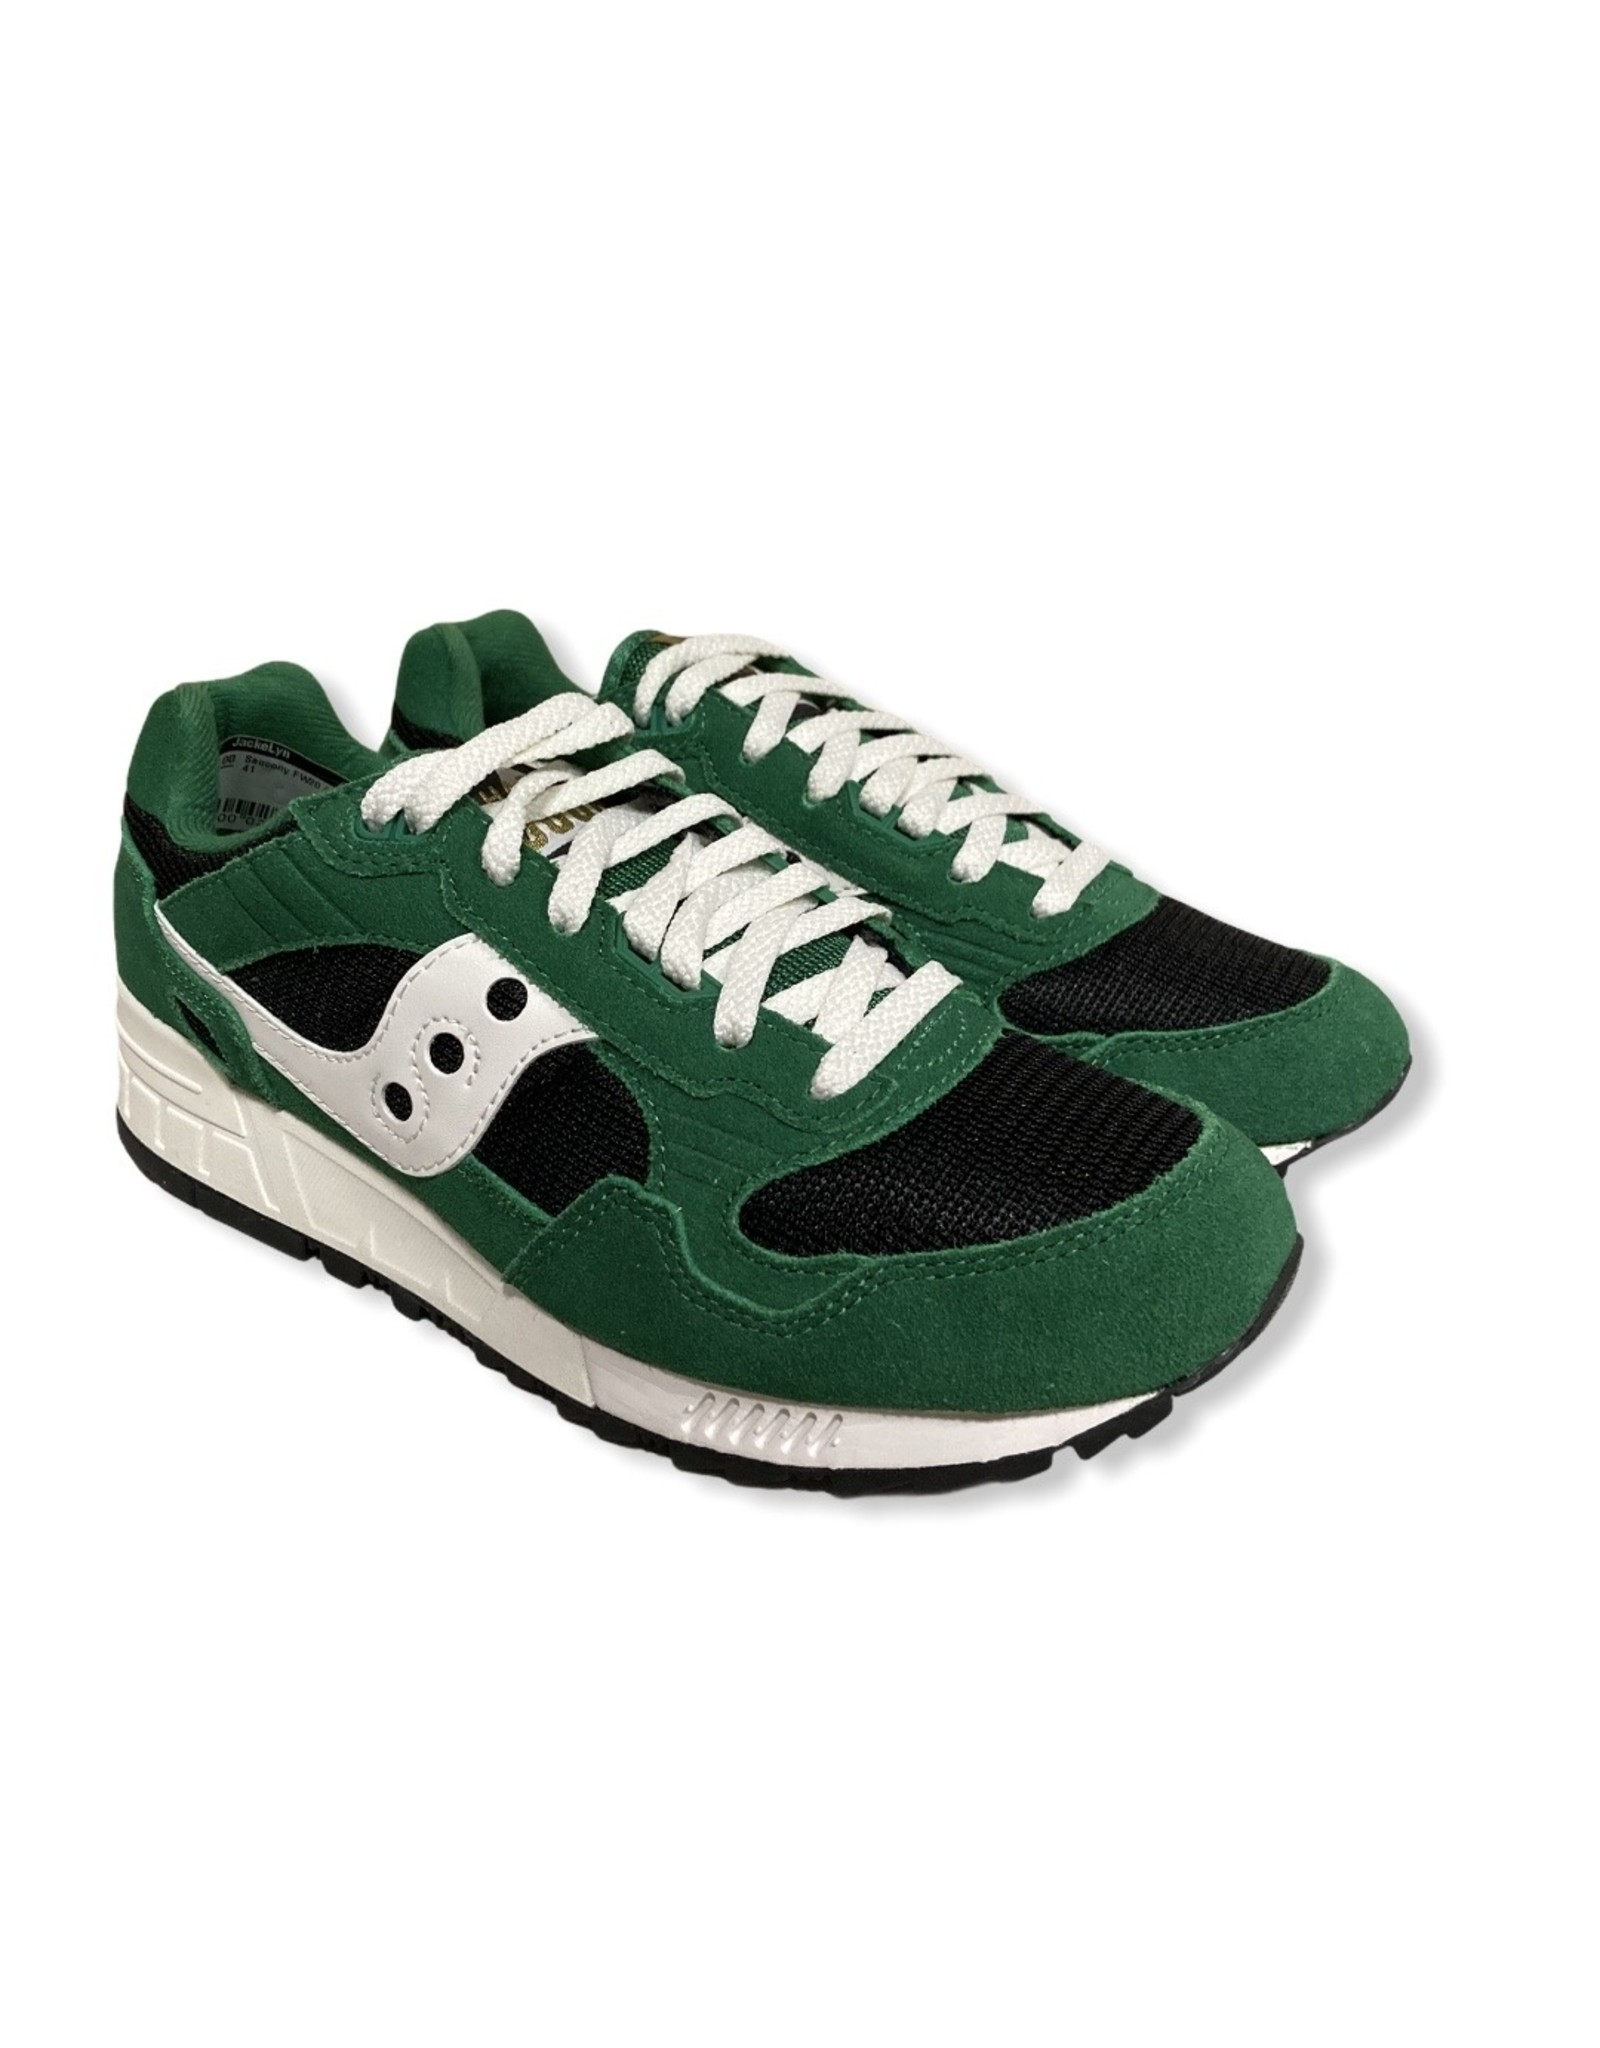 Saucony FW20 Shadow amazon